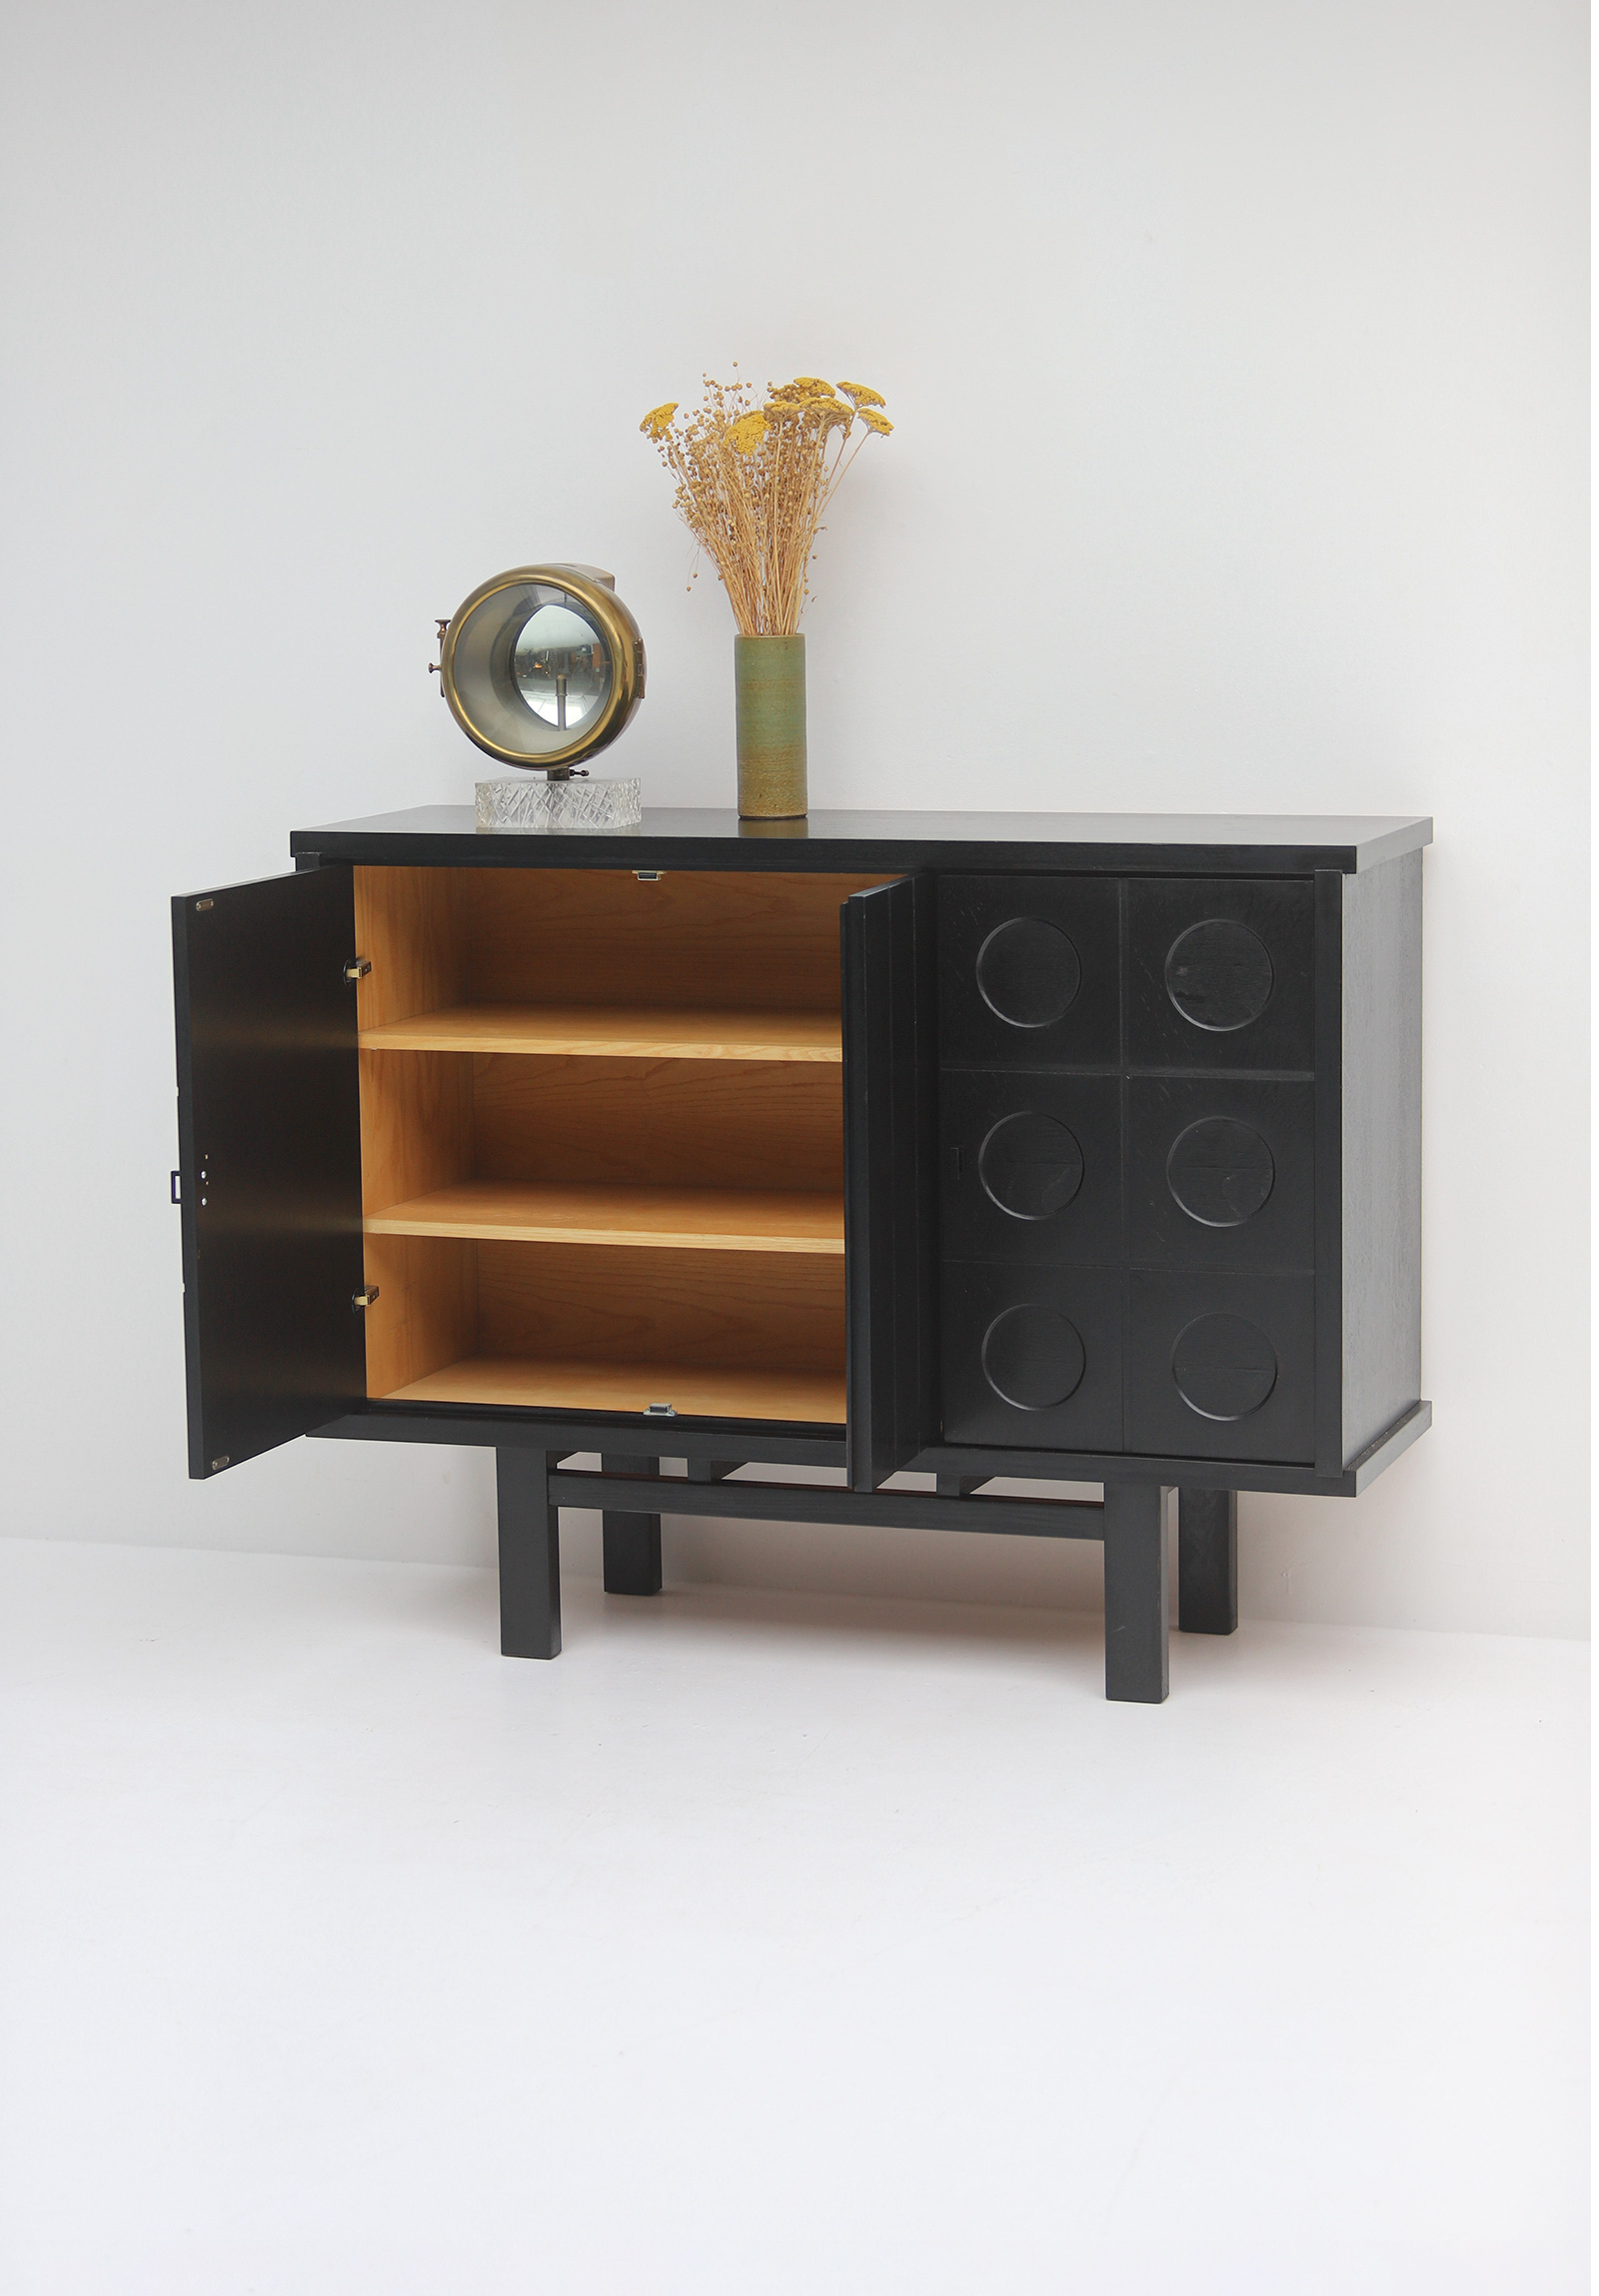 Decorative Black Cabinet with Patterned doors image 5